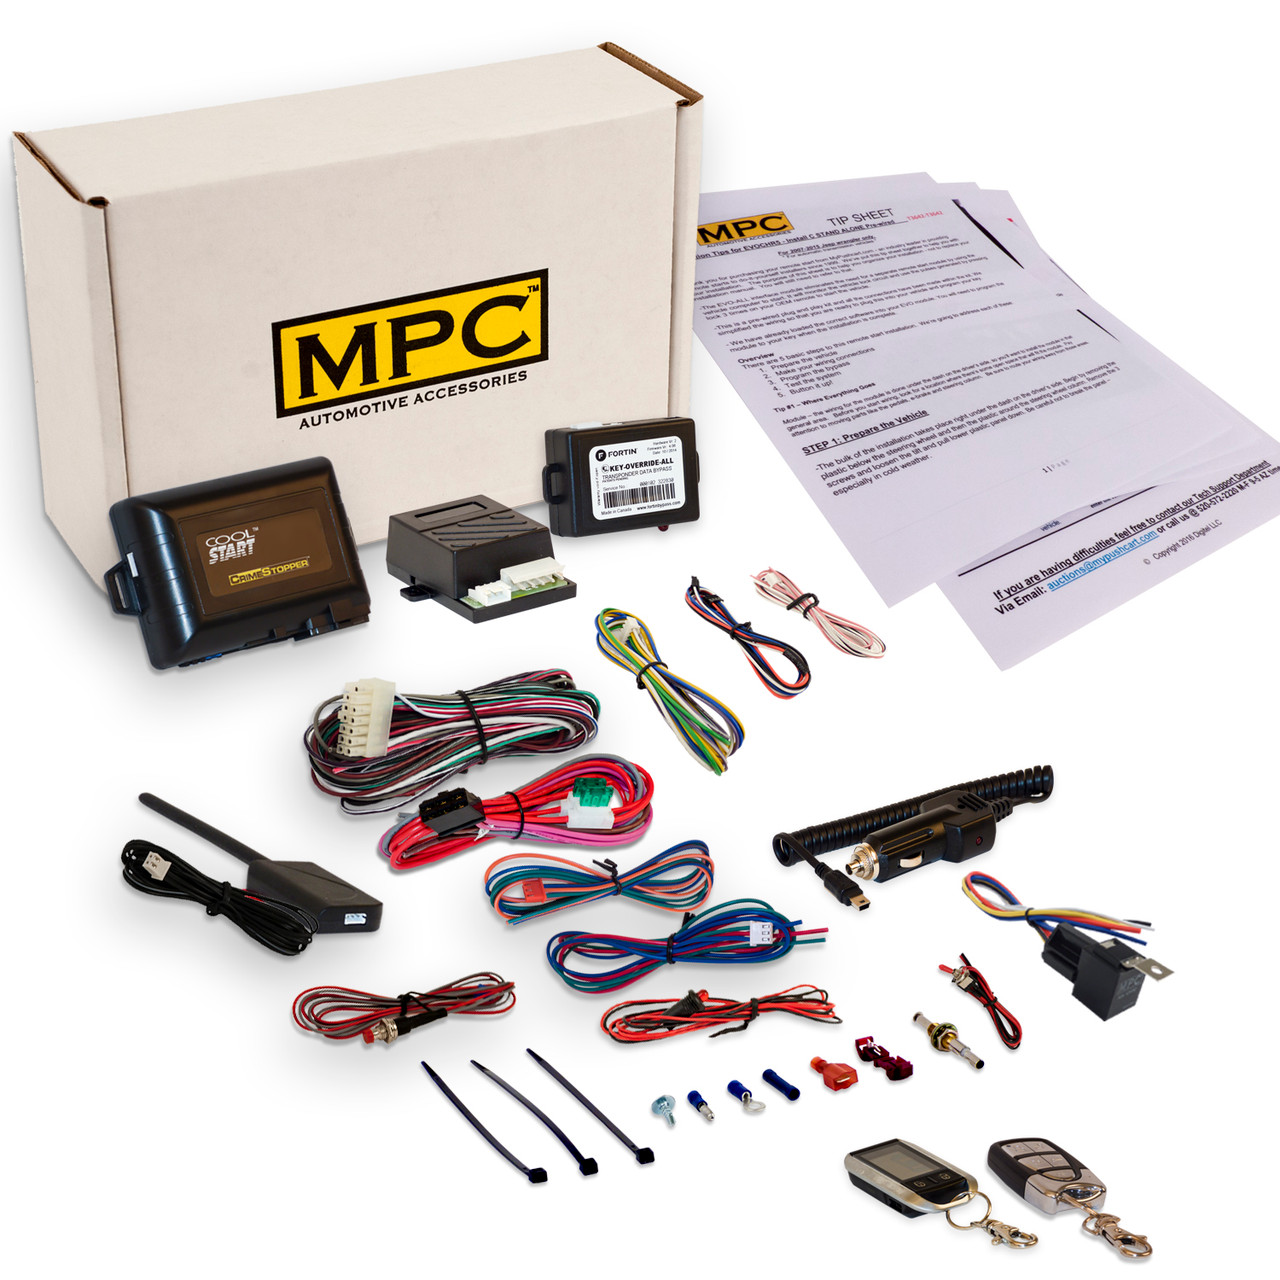 MPC Mazda Tribute 2001-2007 - 2-Way LCD Remote Start Kit With Keyless Entry